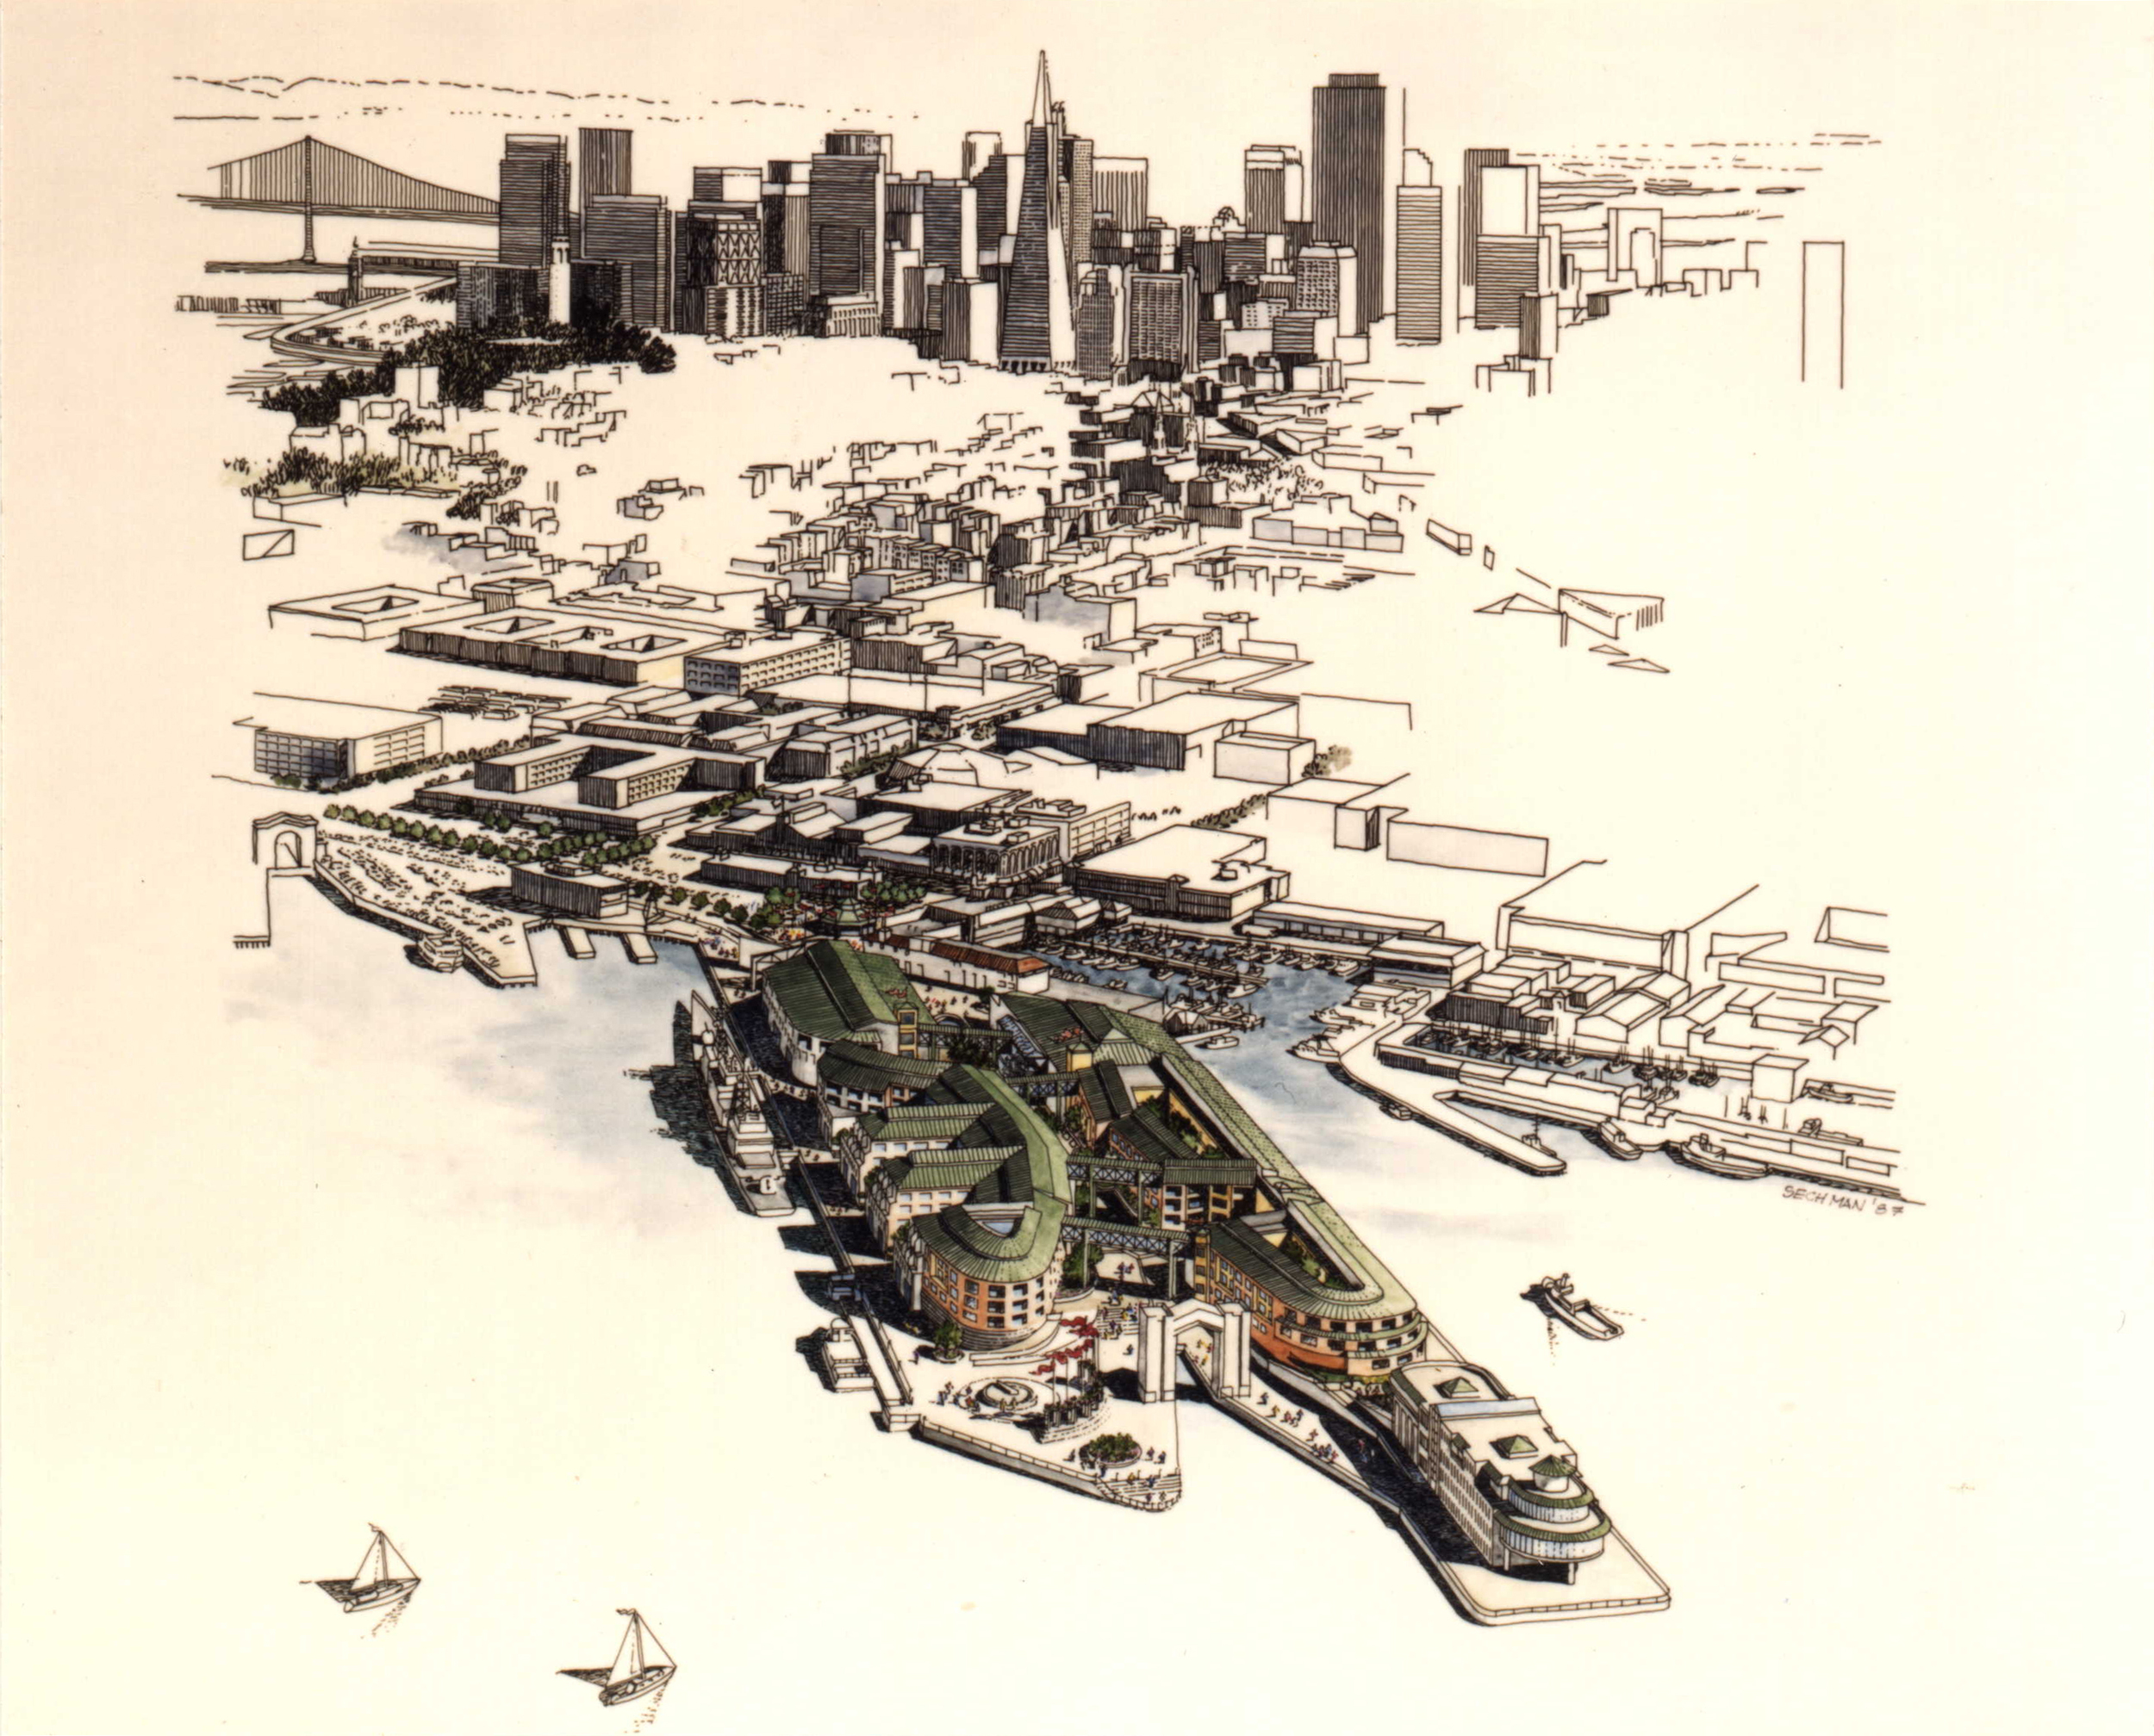 Proposal for Pier 45 Design Competition, Fisherman's Wharf, San Francisco, CA, 1975